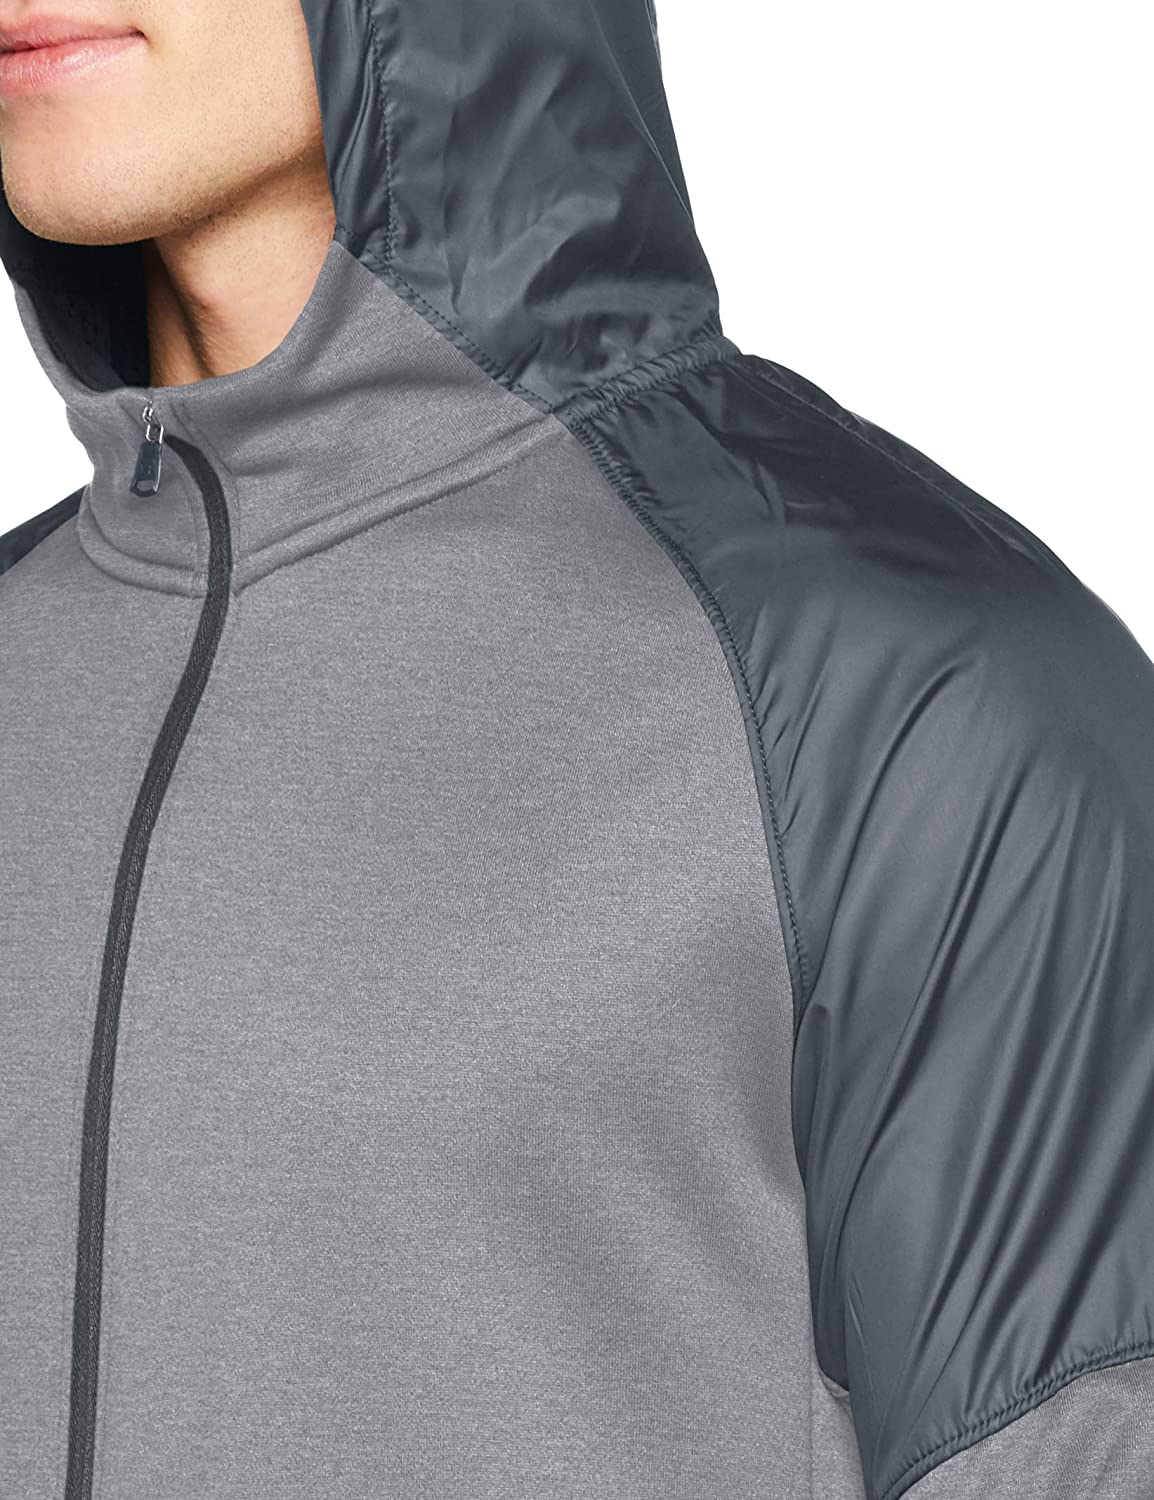 Under Armour MK1 Terry Full Zip Hoodie, Mod Gray//Pitch Gray, Large